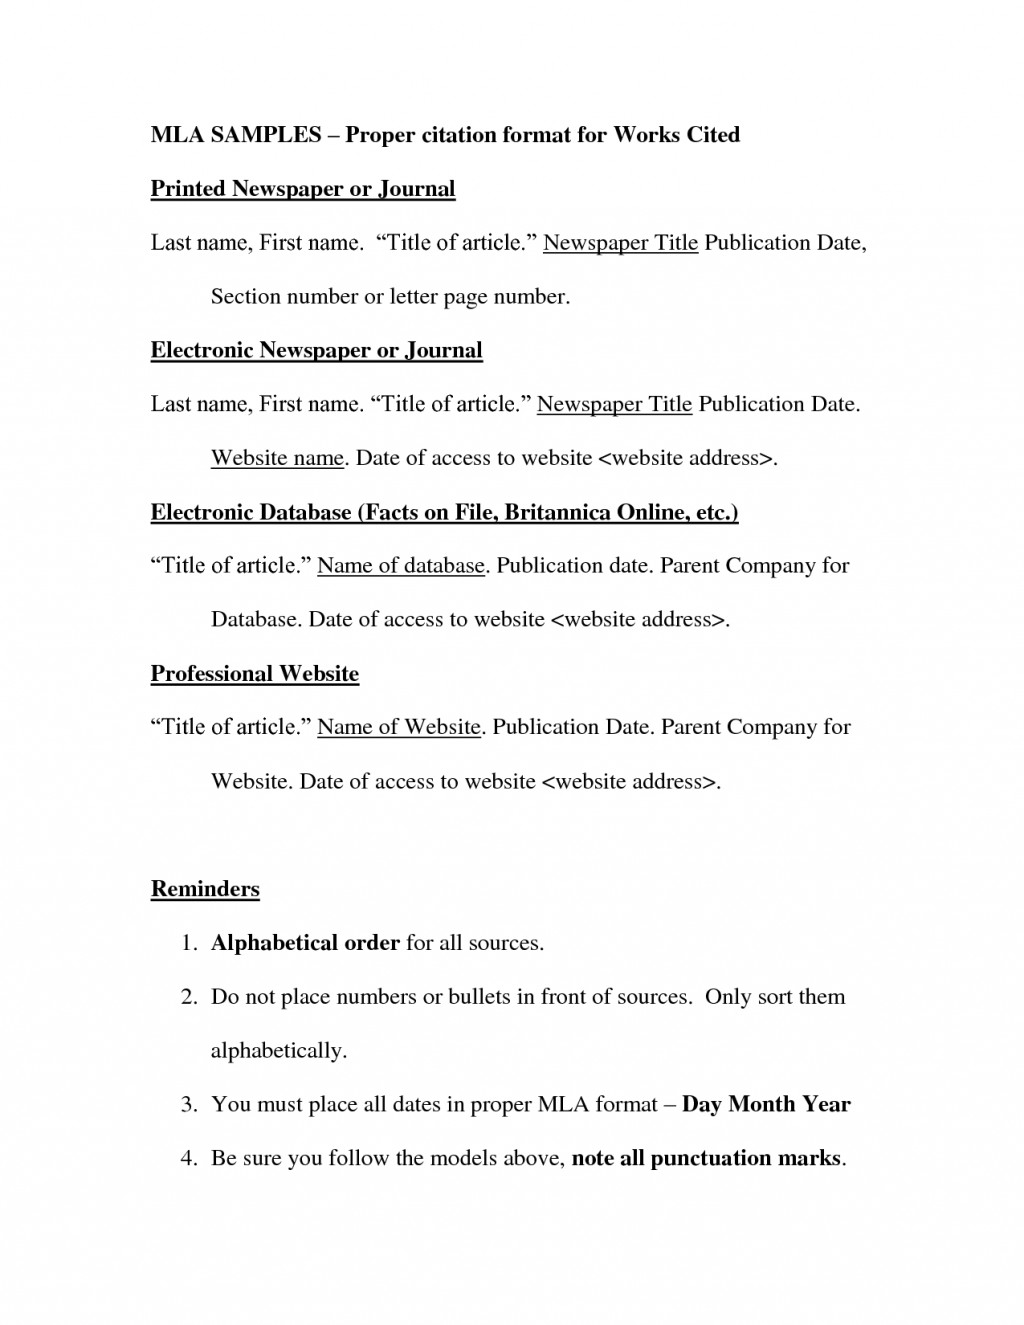 013 Mla Format Works Cited Page Websites 82966 How To Do For Research Unusual Paper A Large